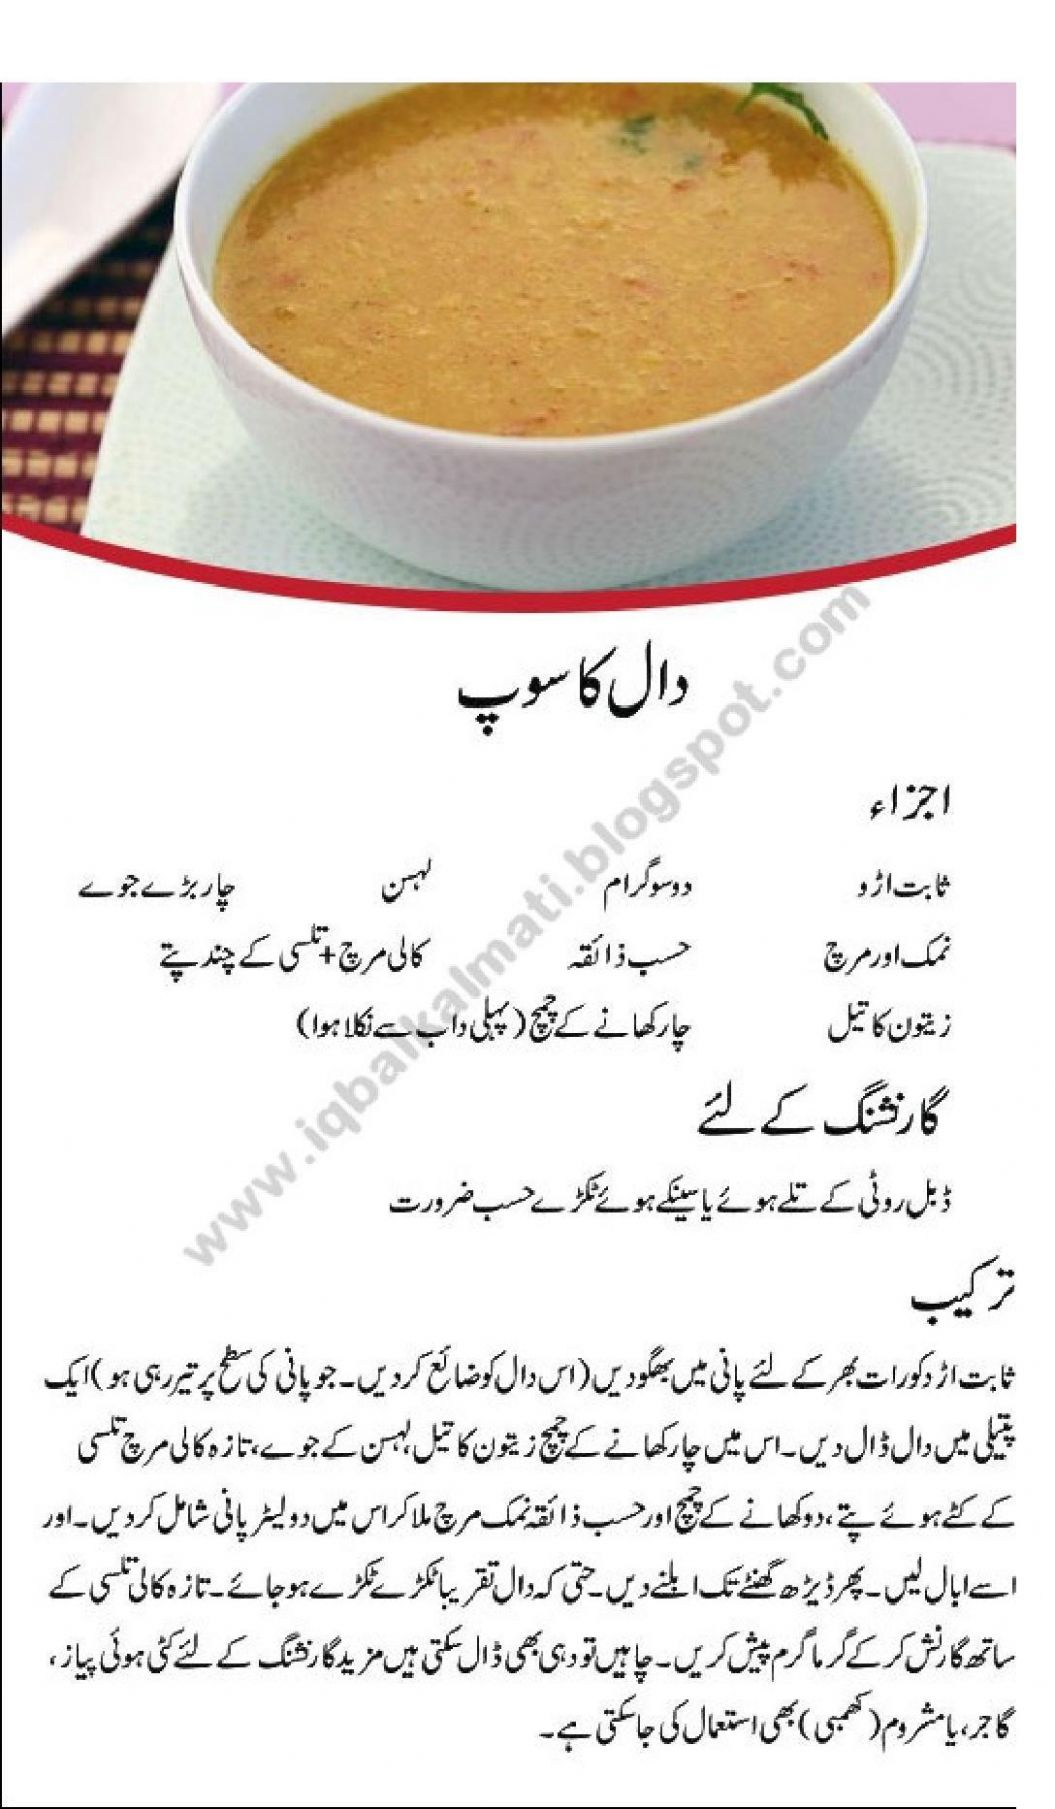 soup recipes urdu for Android - APK Download